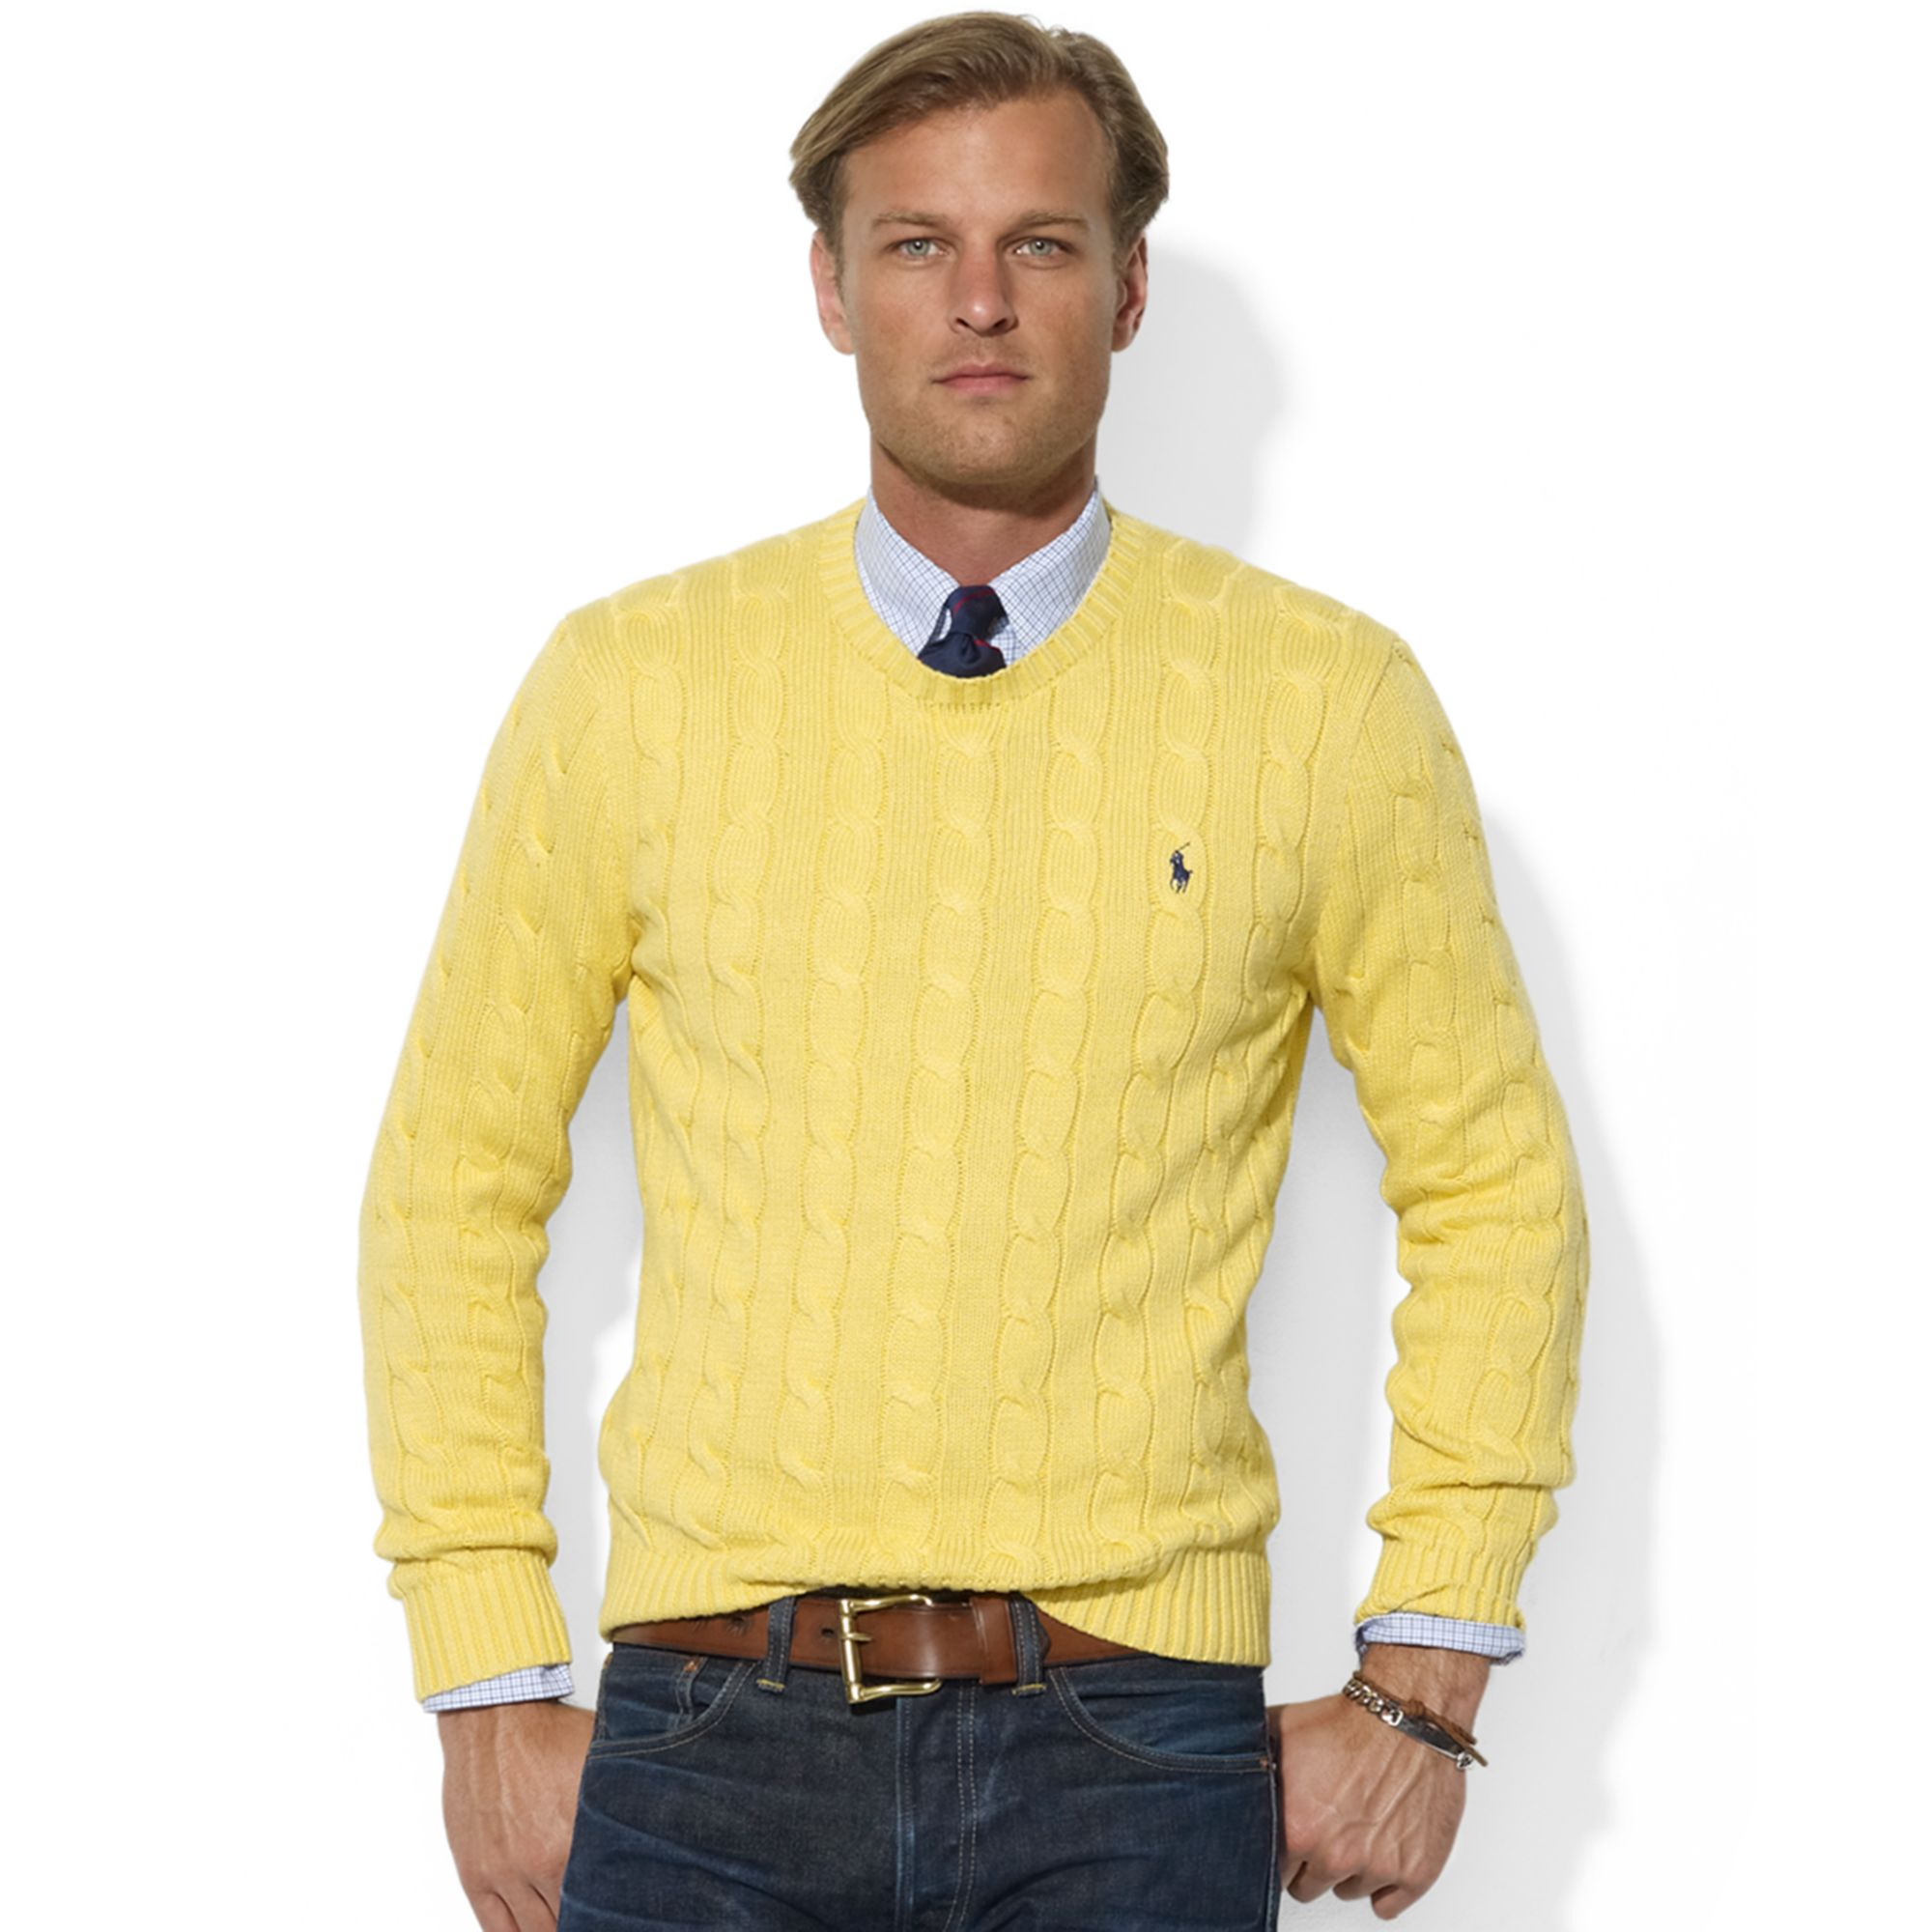 Yellow Crew Neck Jumper Mens - Cashmere Sweater England